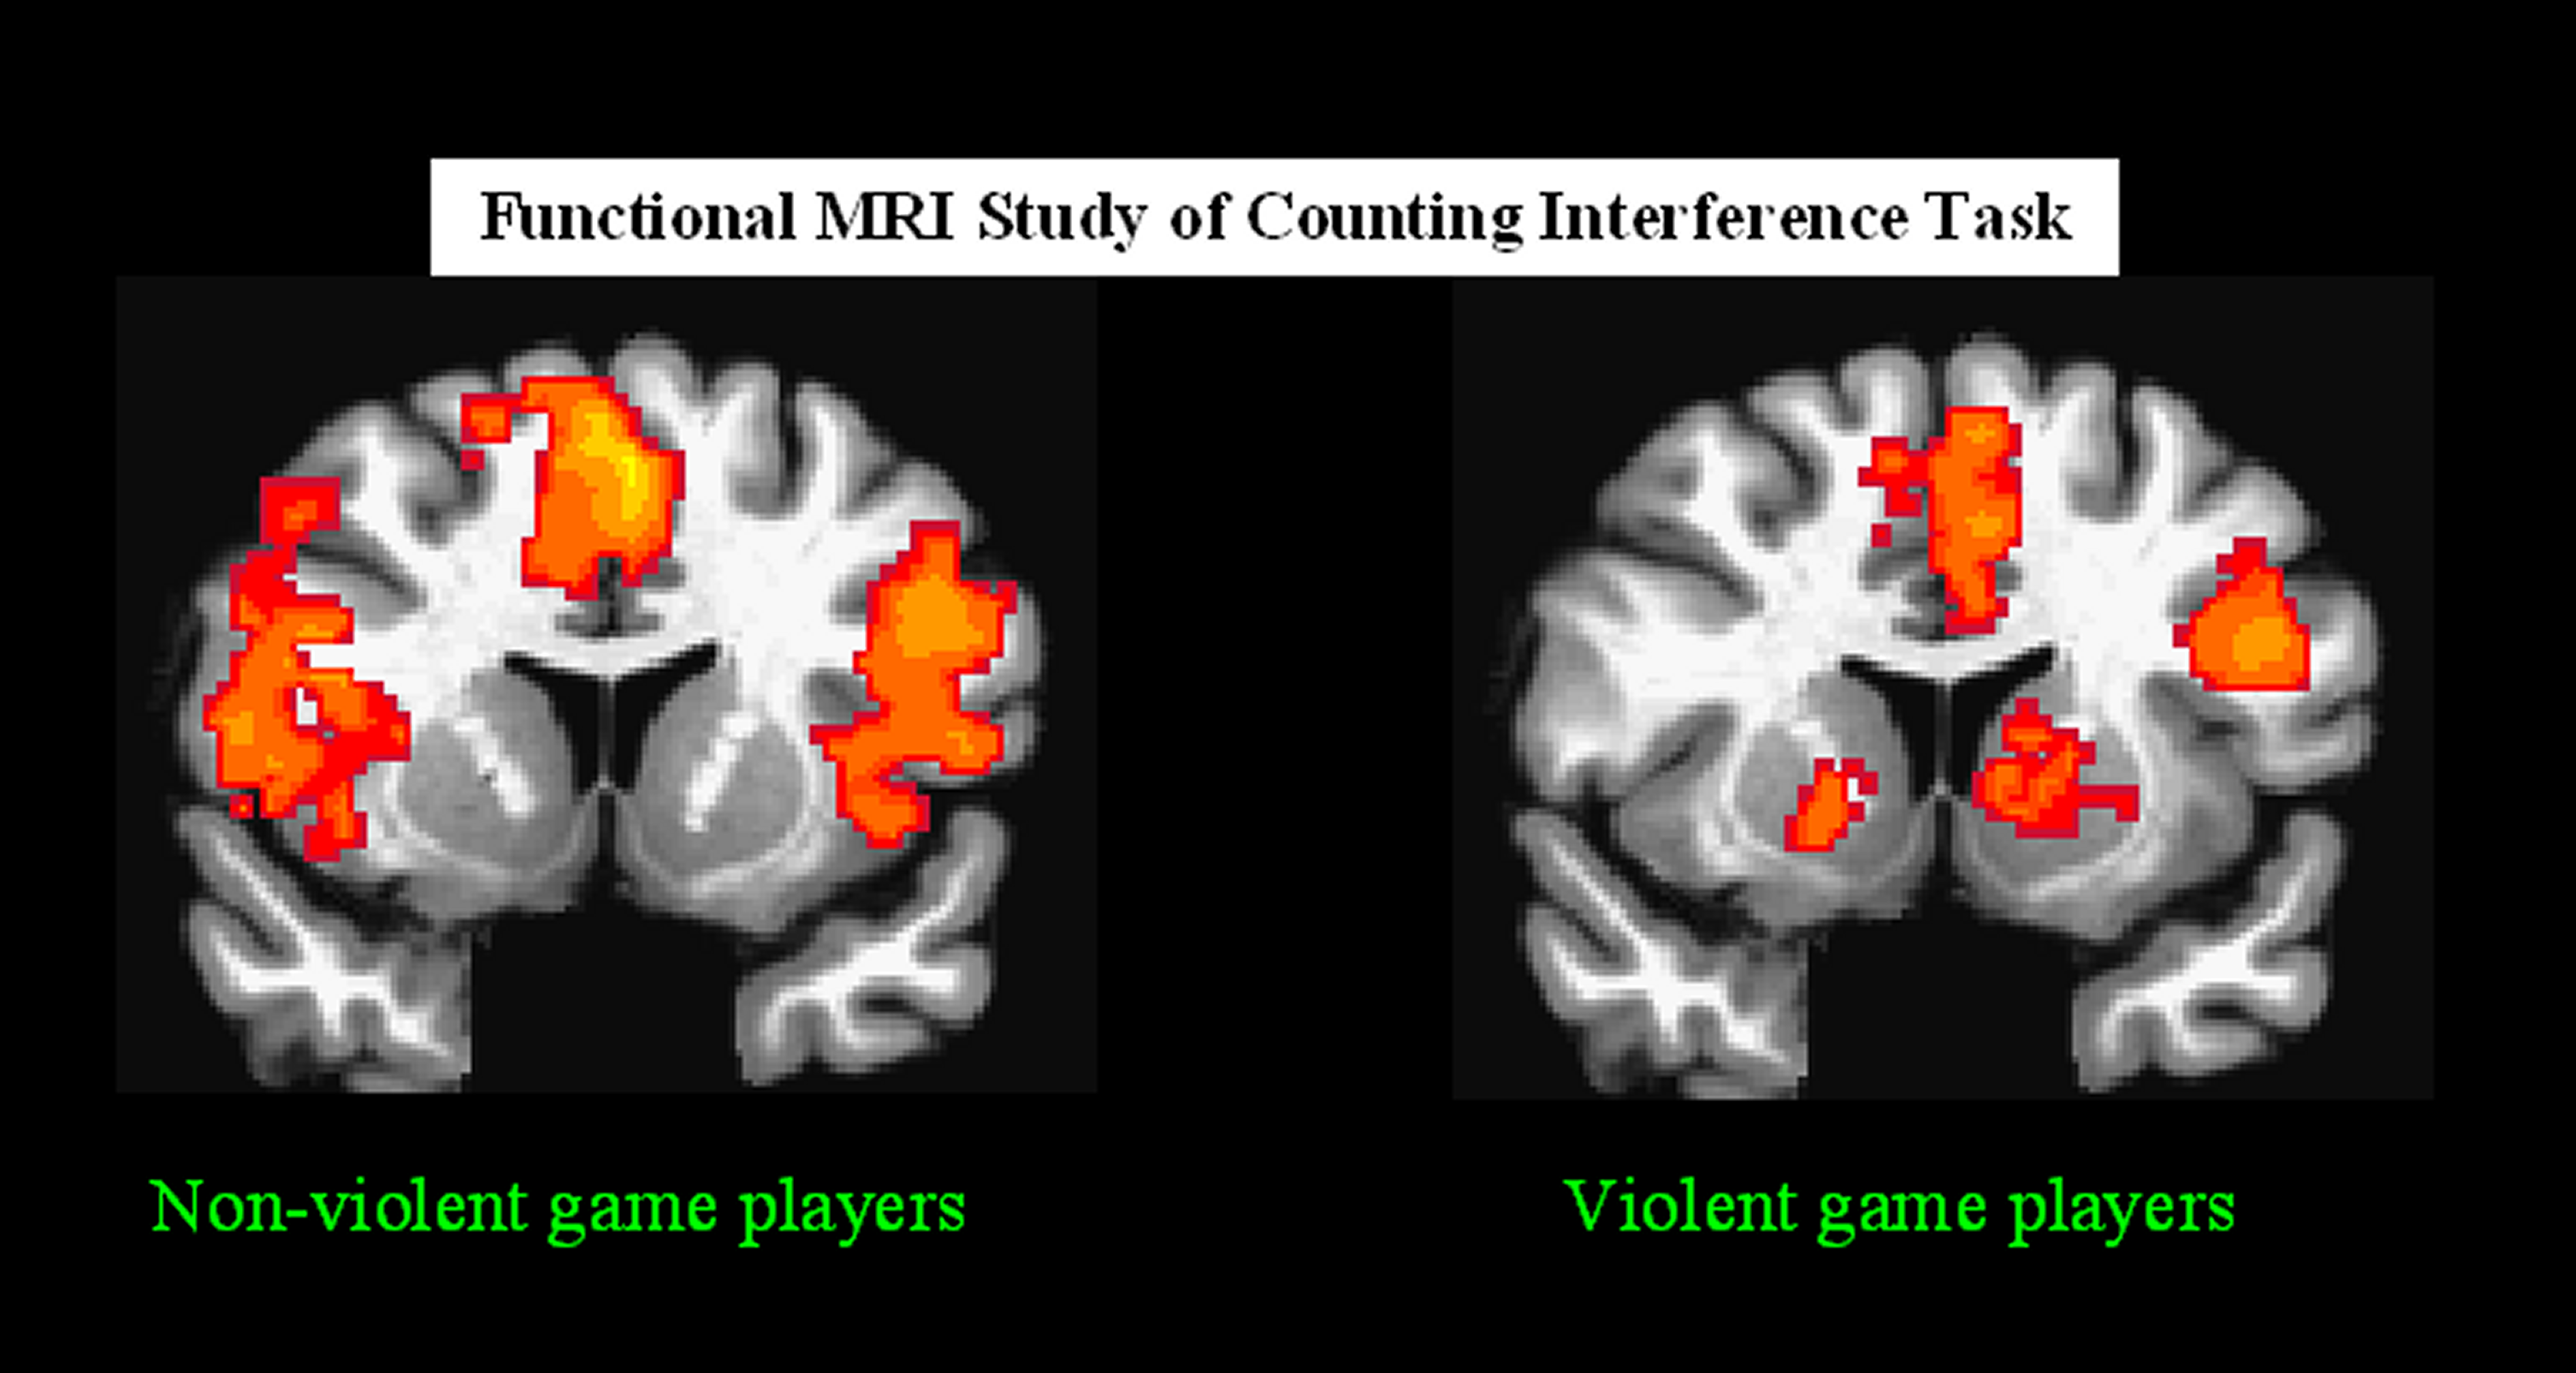 Positive link between video games and academic performance, study suggests